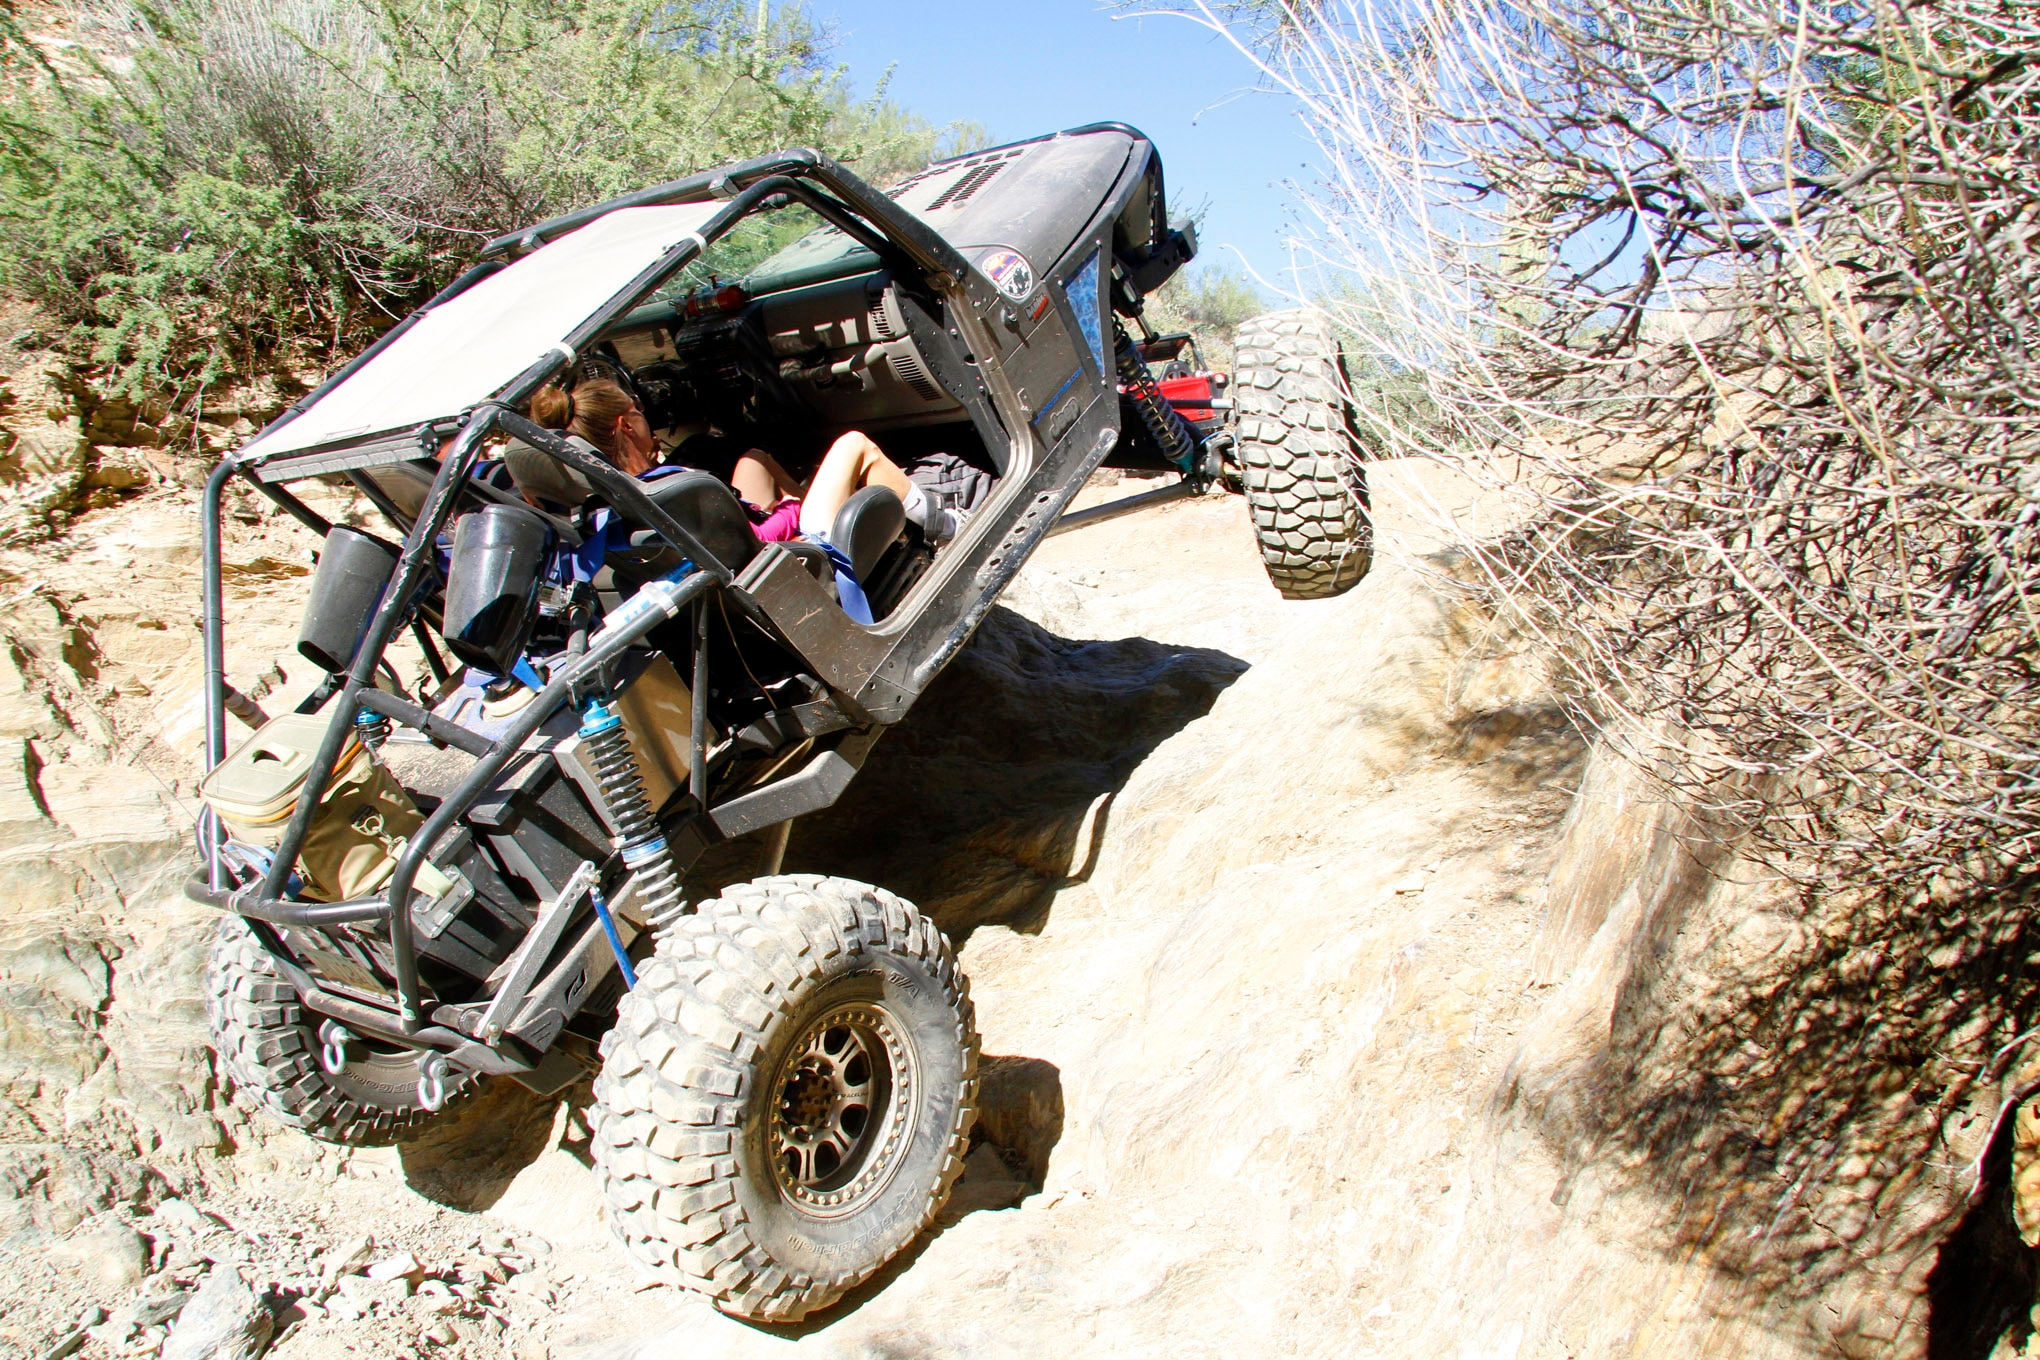 Collateral Damage was our first trail of the day. After working their way up the initial trail obstacles, Tyler and Nicole Parsons throttled up this steep waterfall in their buggied 2003 Rubicon. Lost Industries built the linked suspension on the Wrangler using 16-inch-travel King coilovers. The rear has been modified with a Motobilt back-half kit.